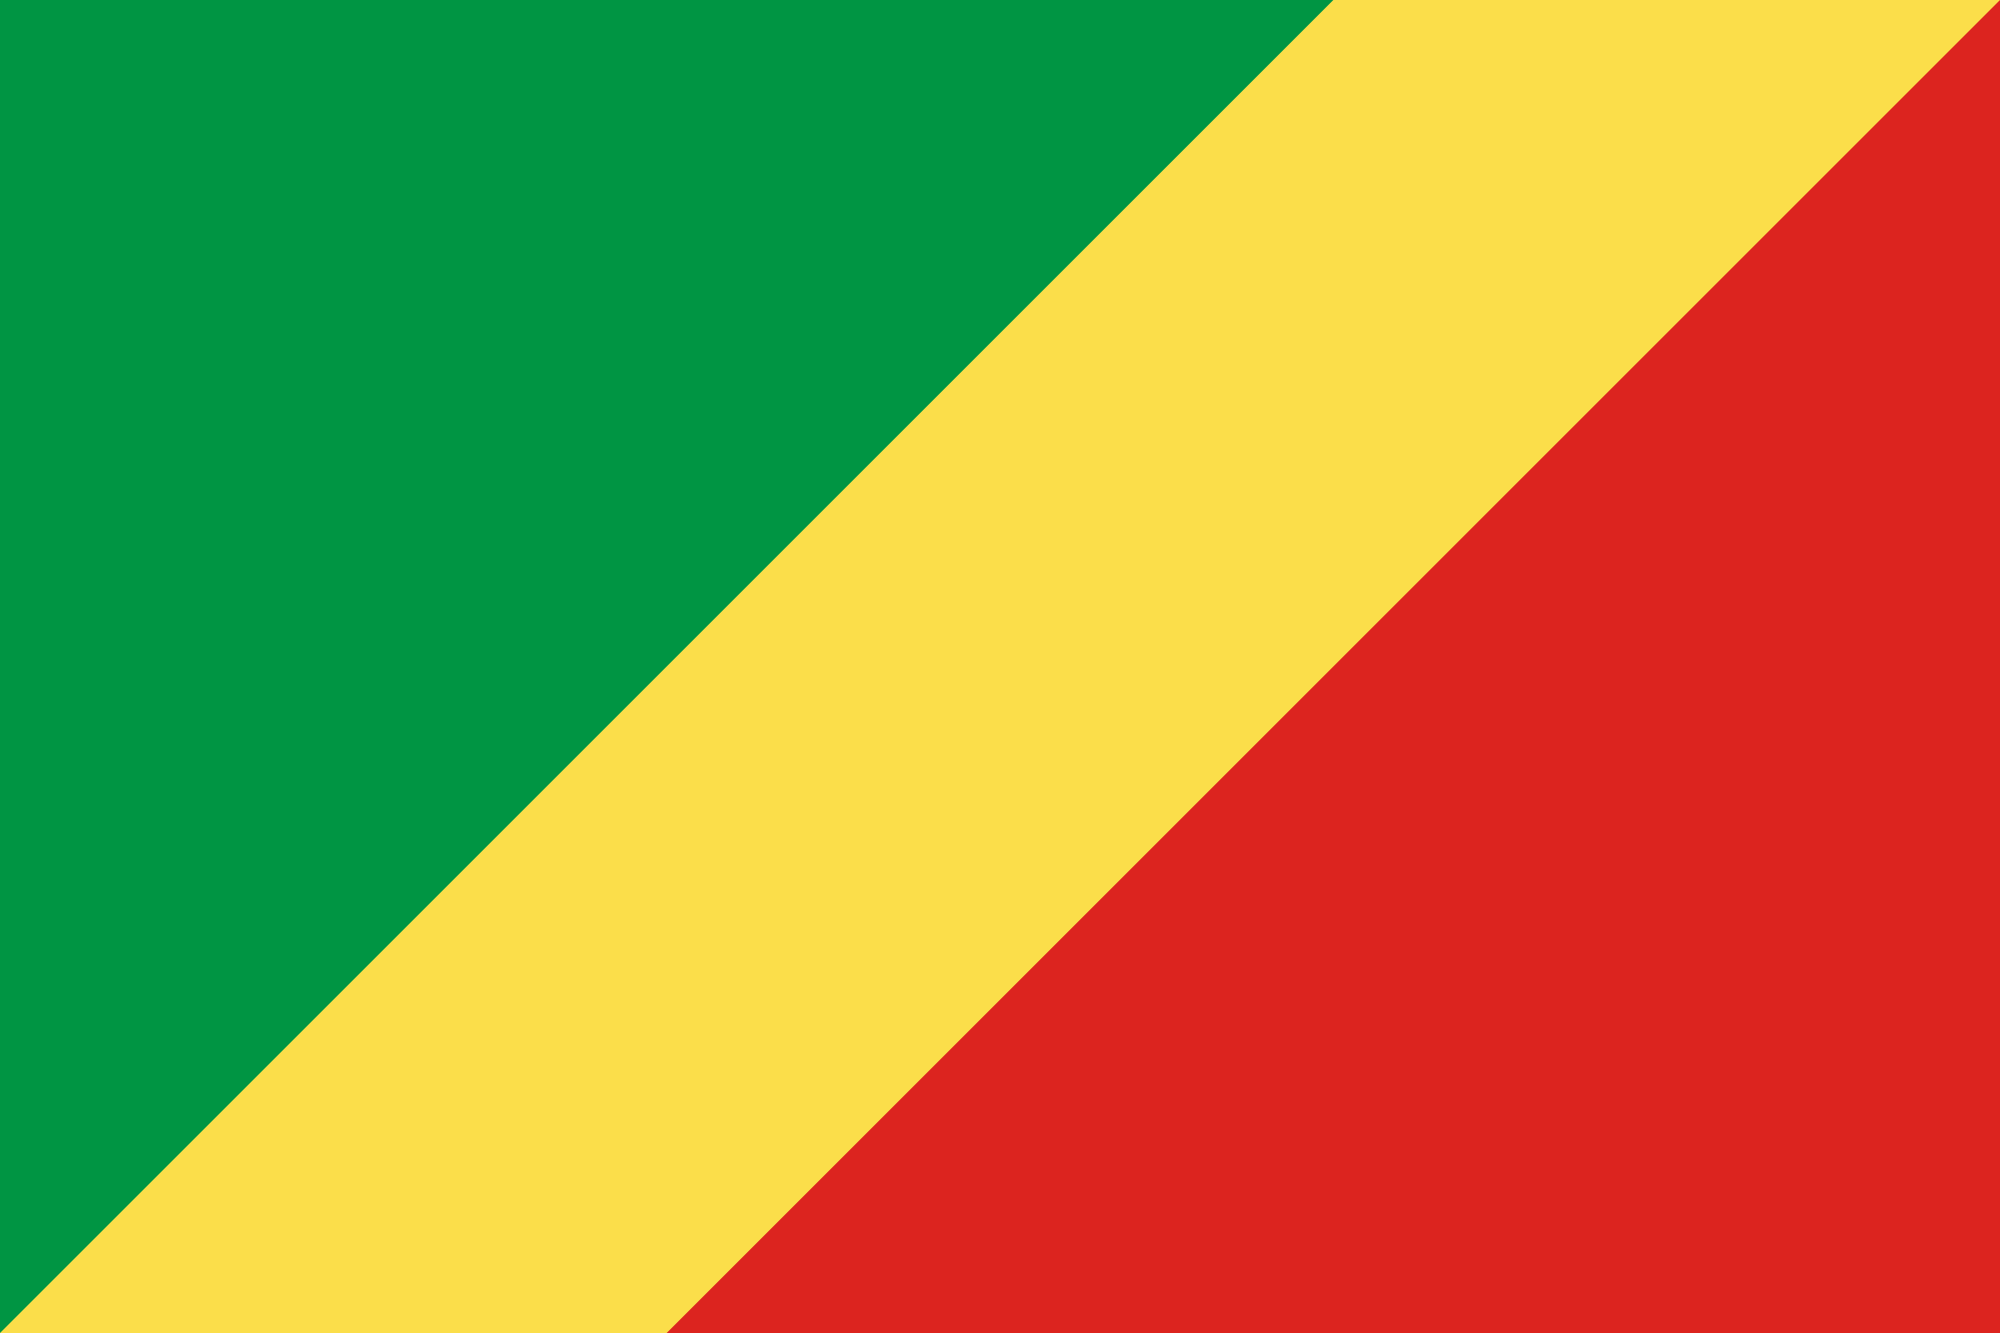 The official flag of the Republic of the Congo